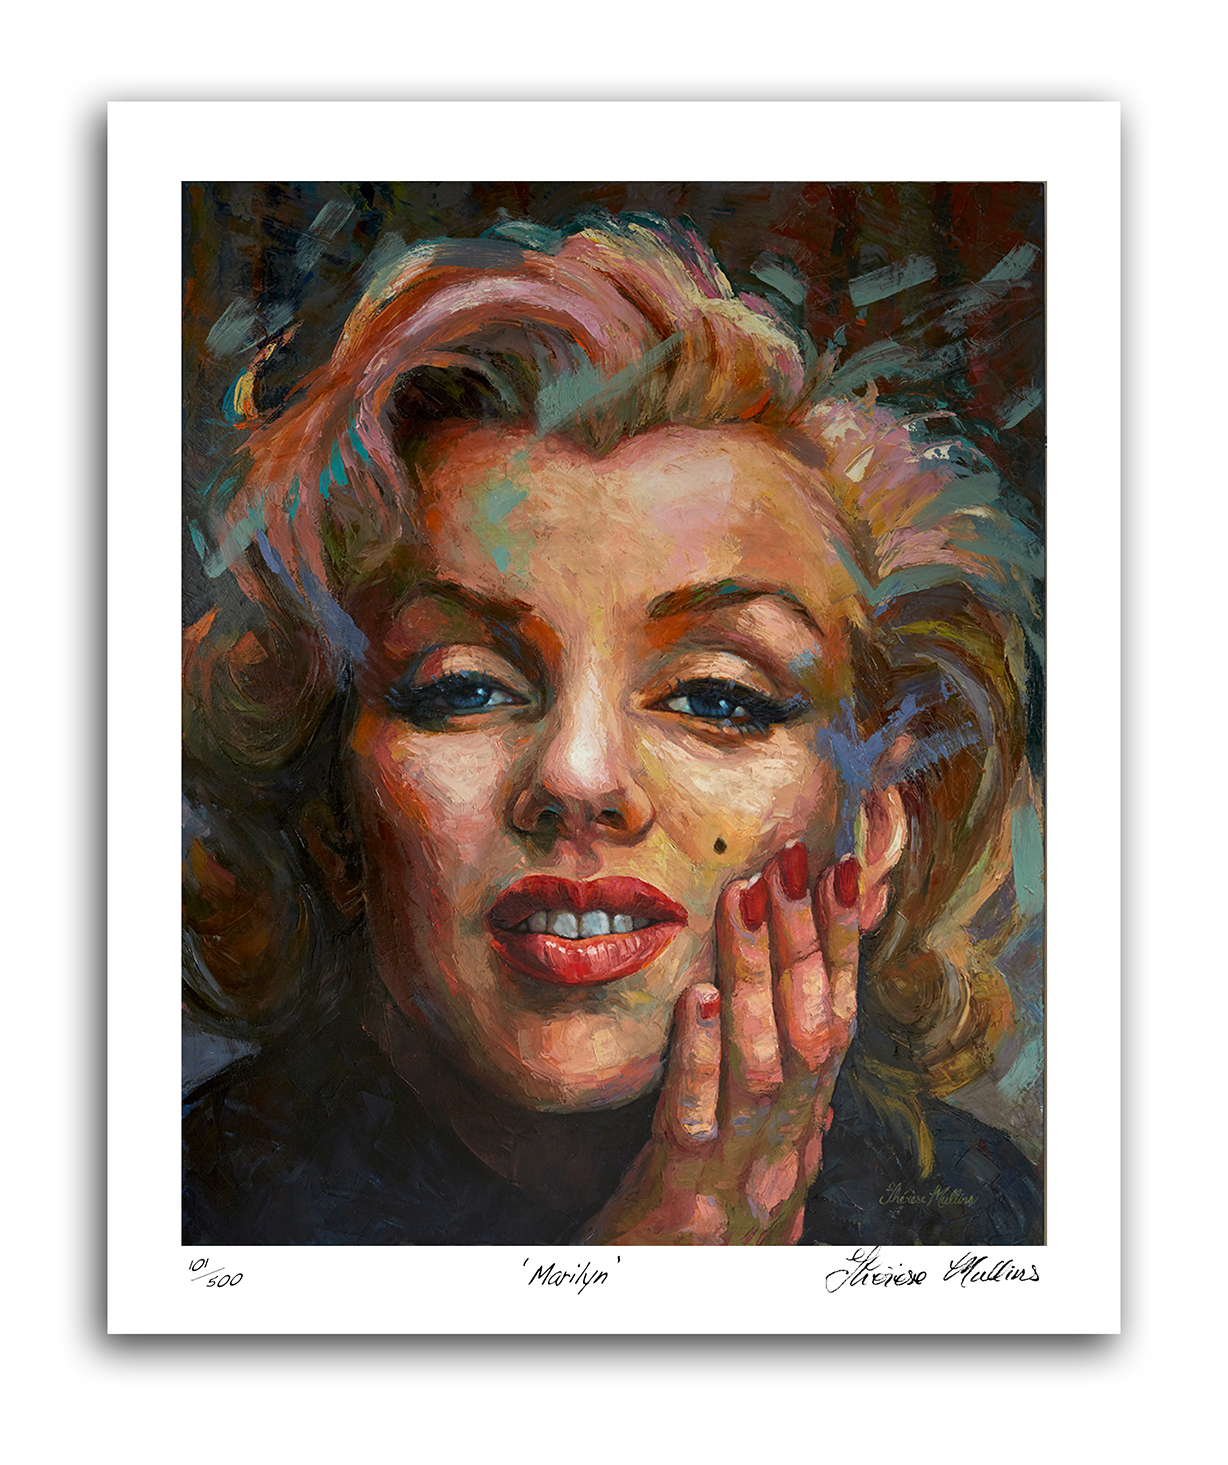 Research paper on marilyn monroe